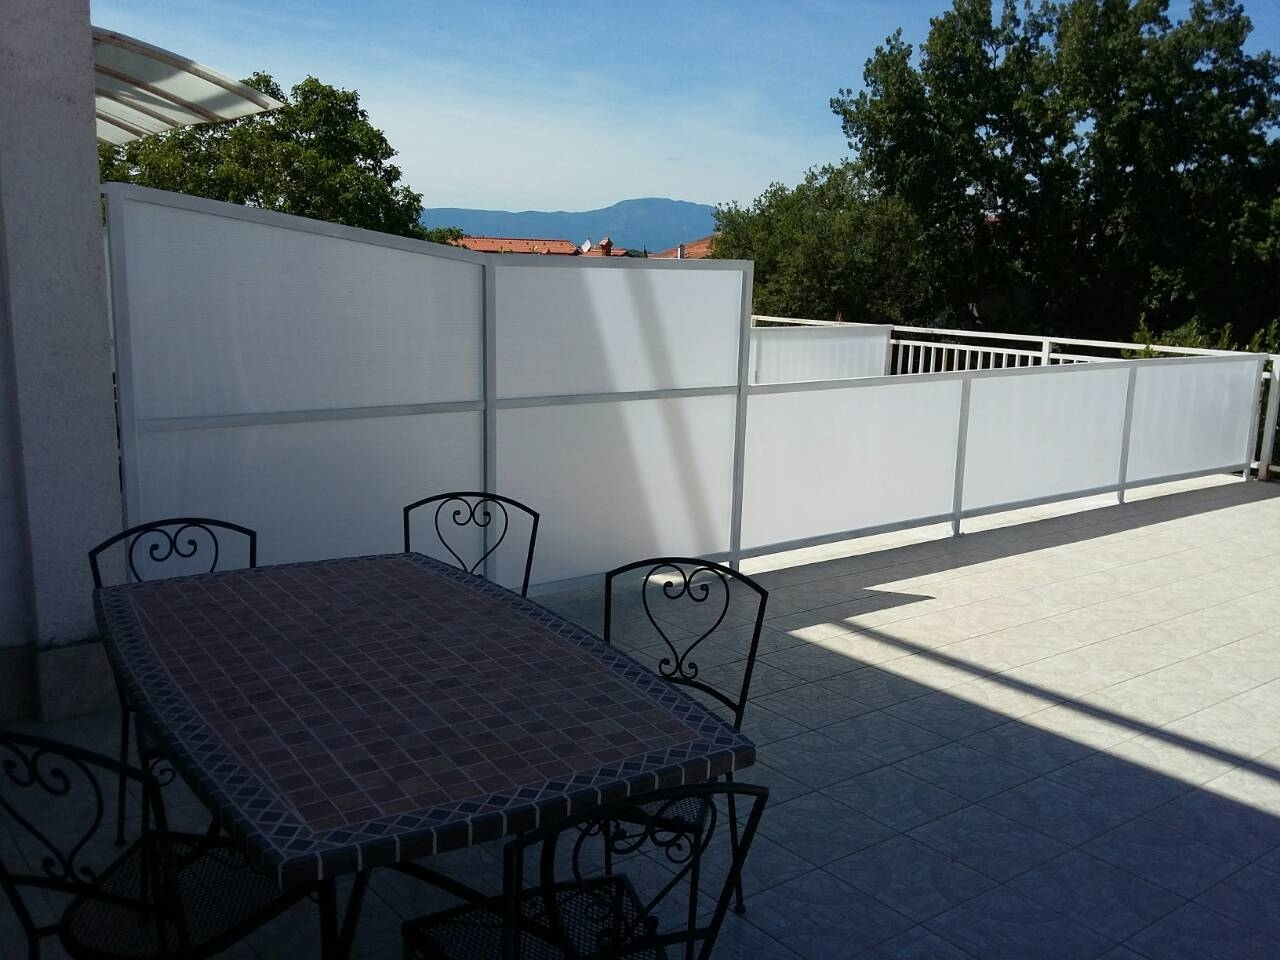 Apartments, Malinska, Island of Krk - Apartments  Ren - 100m from the sea with parking: